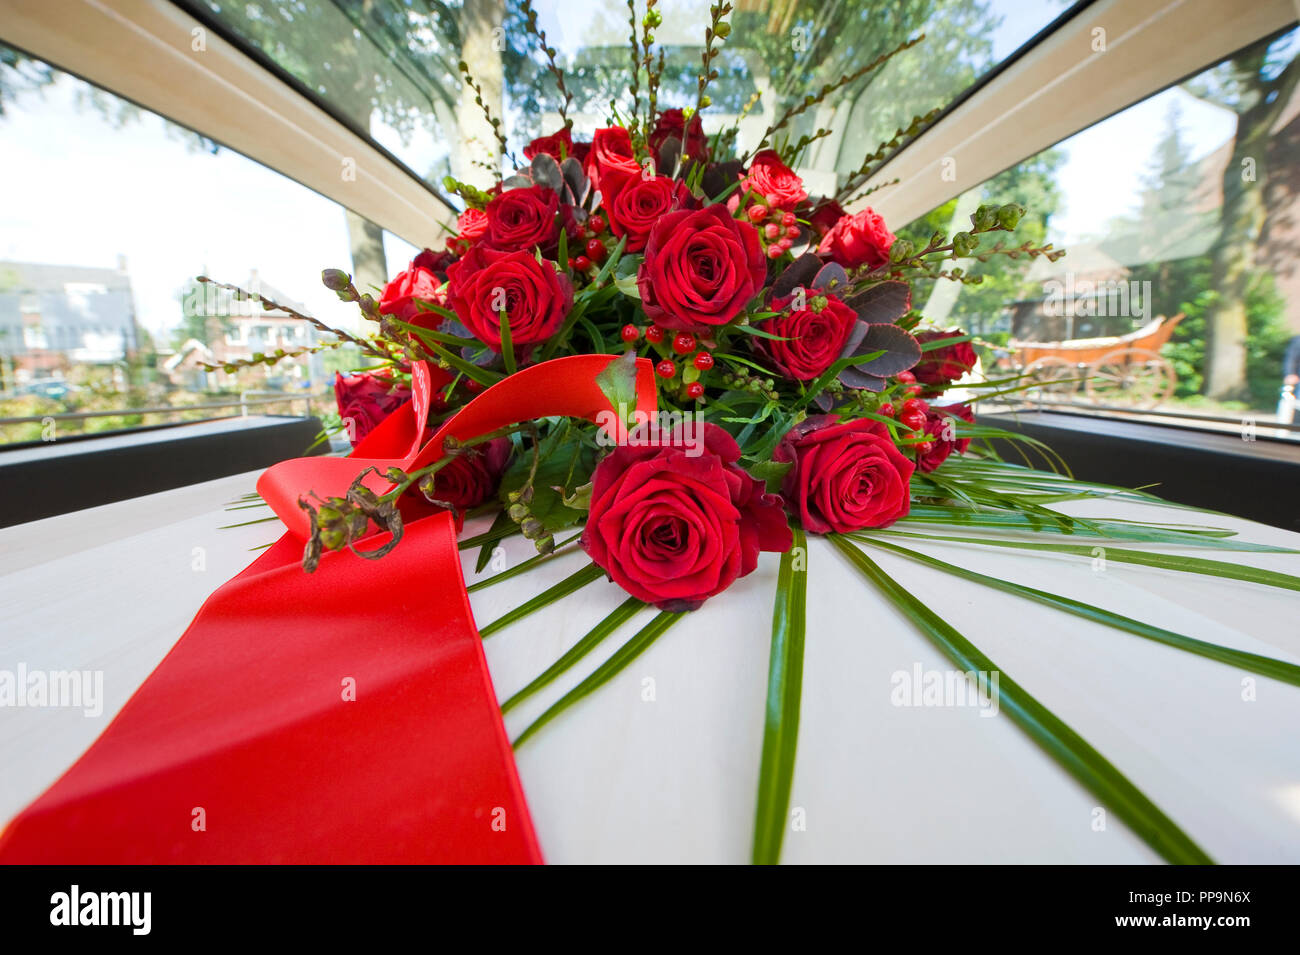 Tomb flower arrangement stock photos tomb flower arrangement stock a coffin with a flower arrangement in a funeral car stock image izmirmasajfo